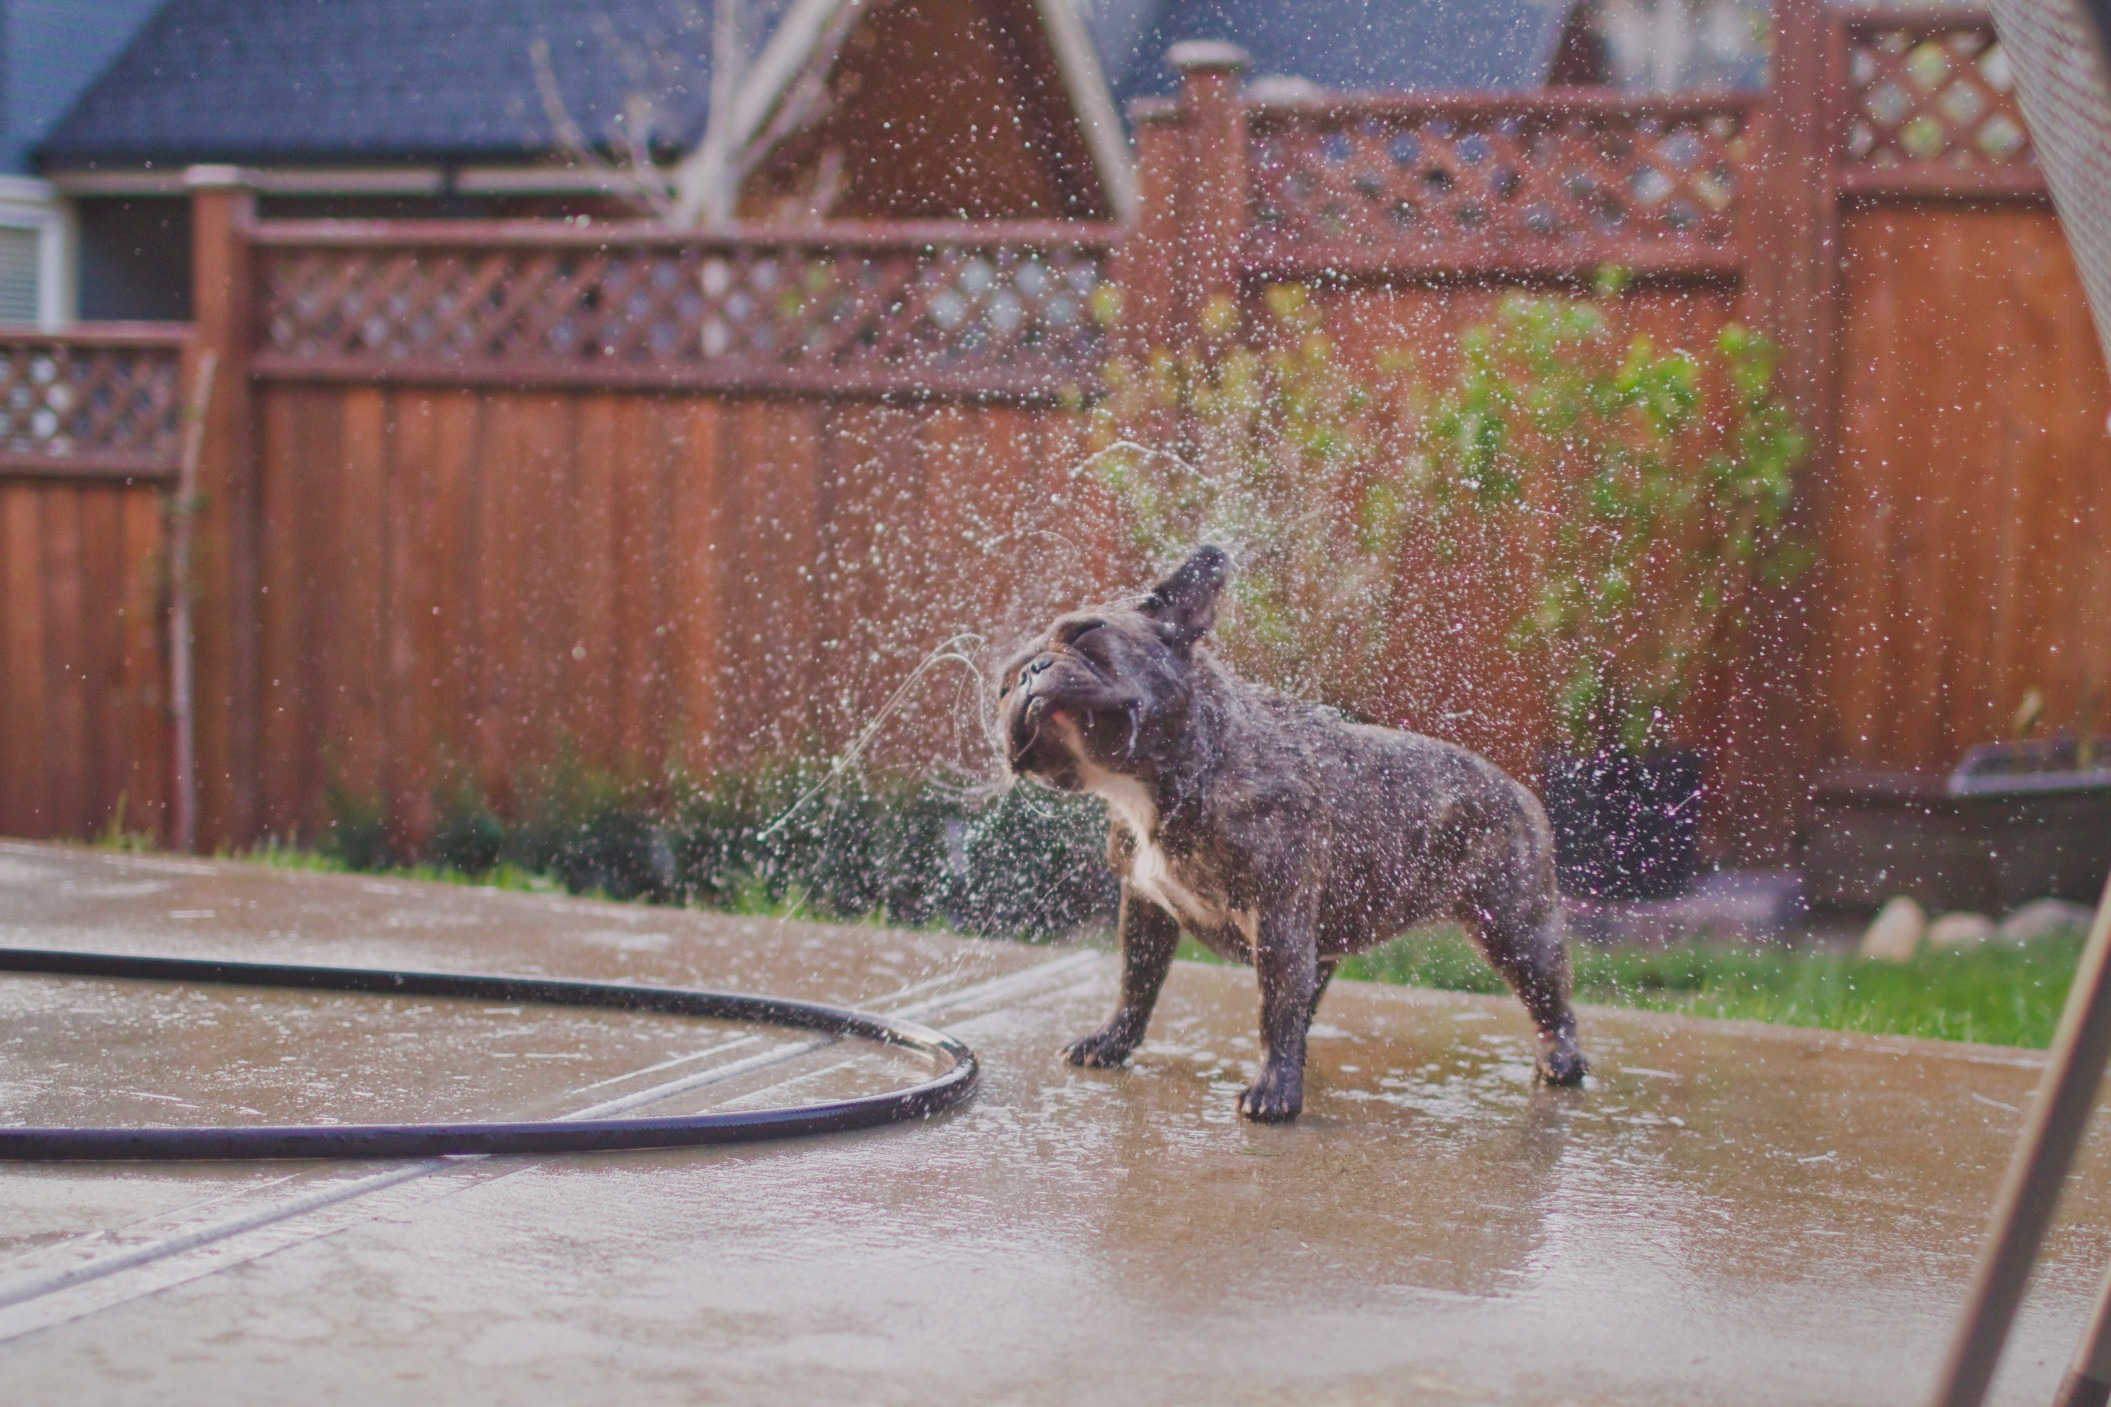 dog cooling off with water hose